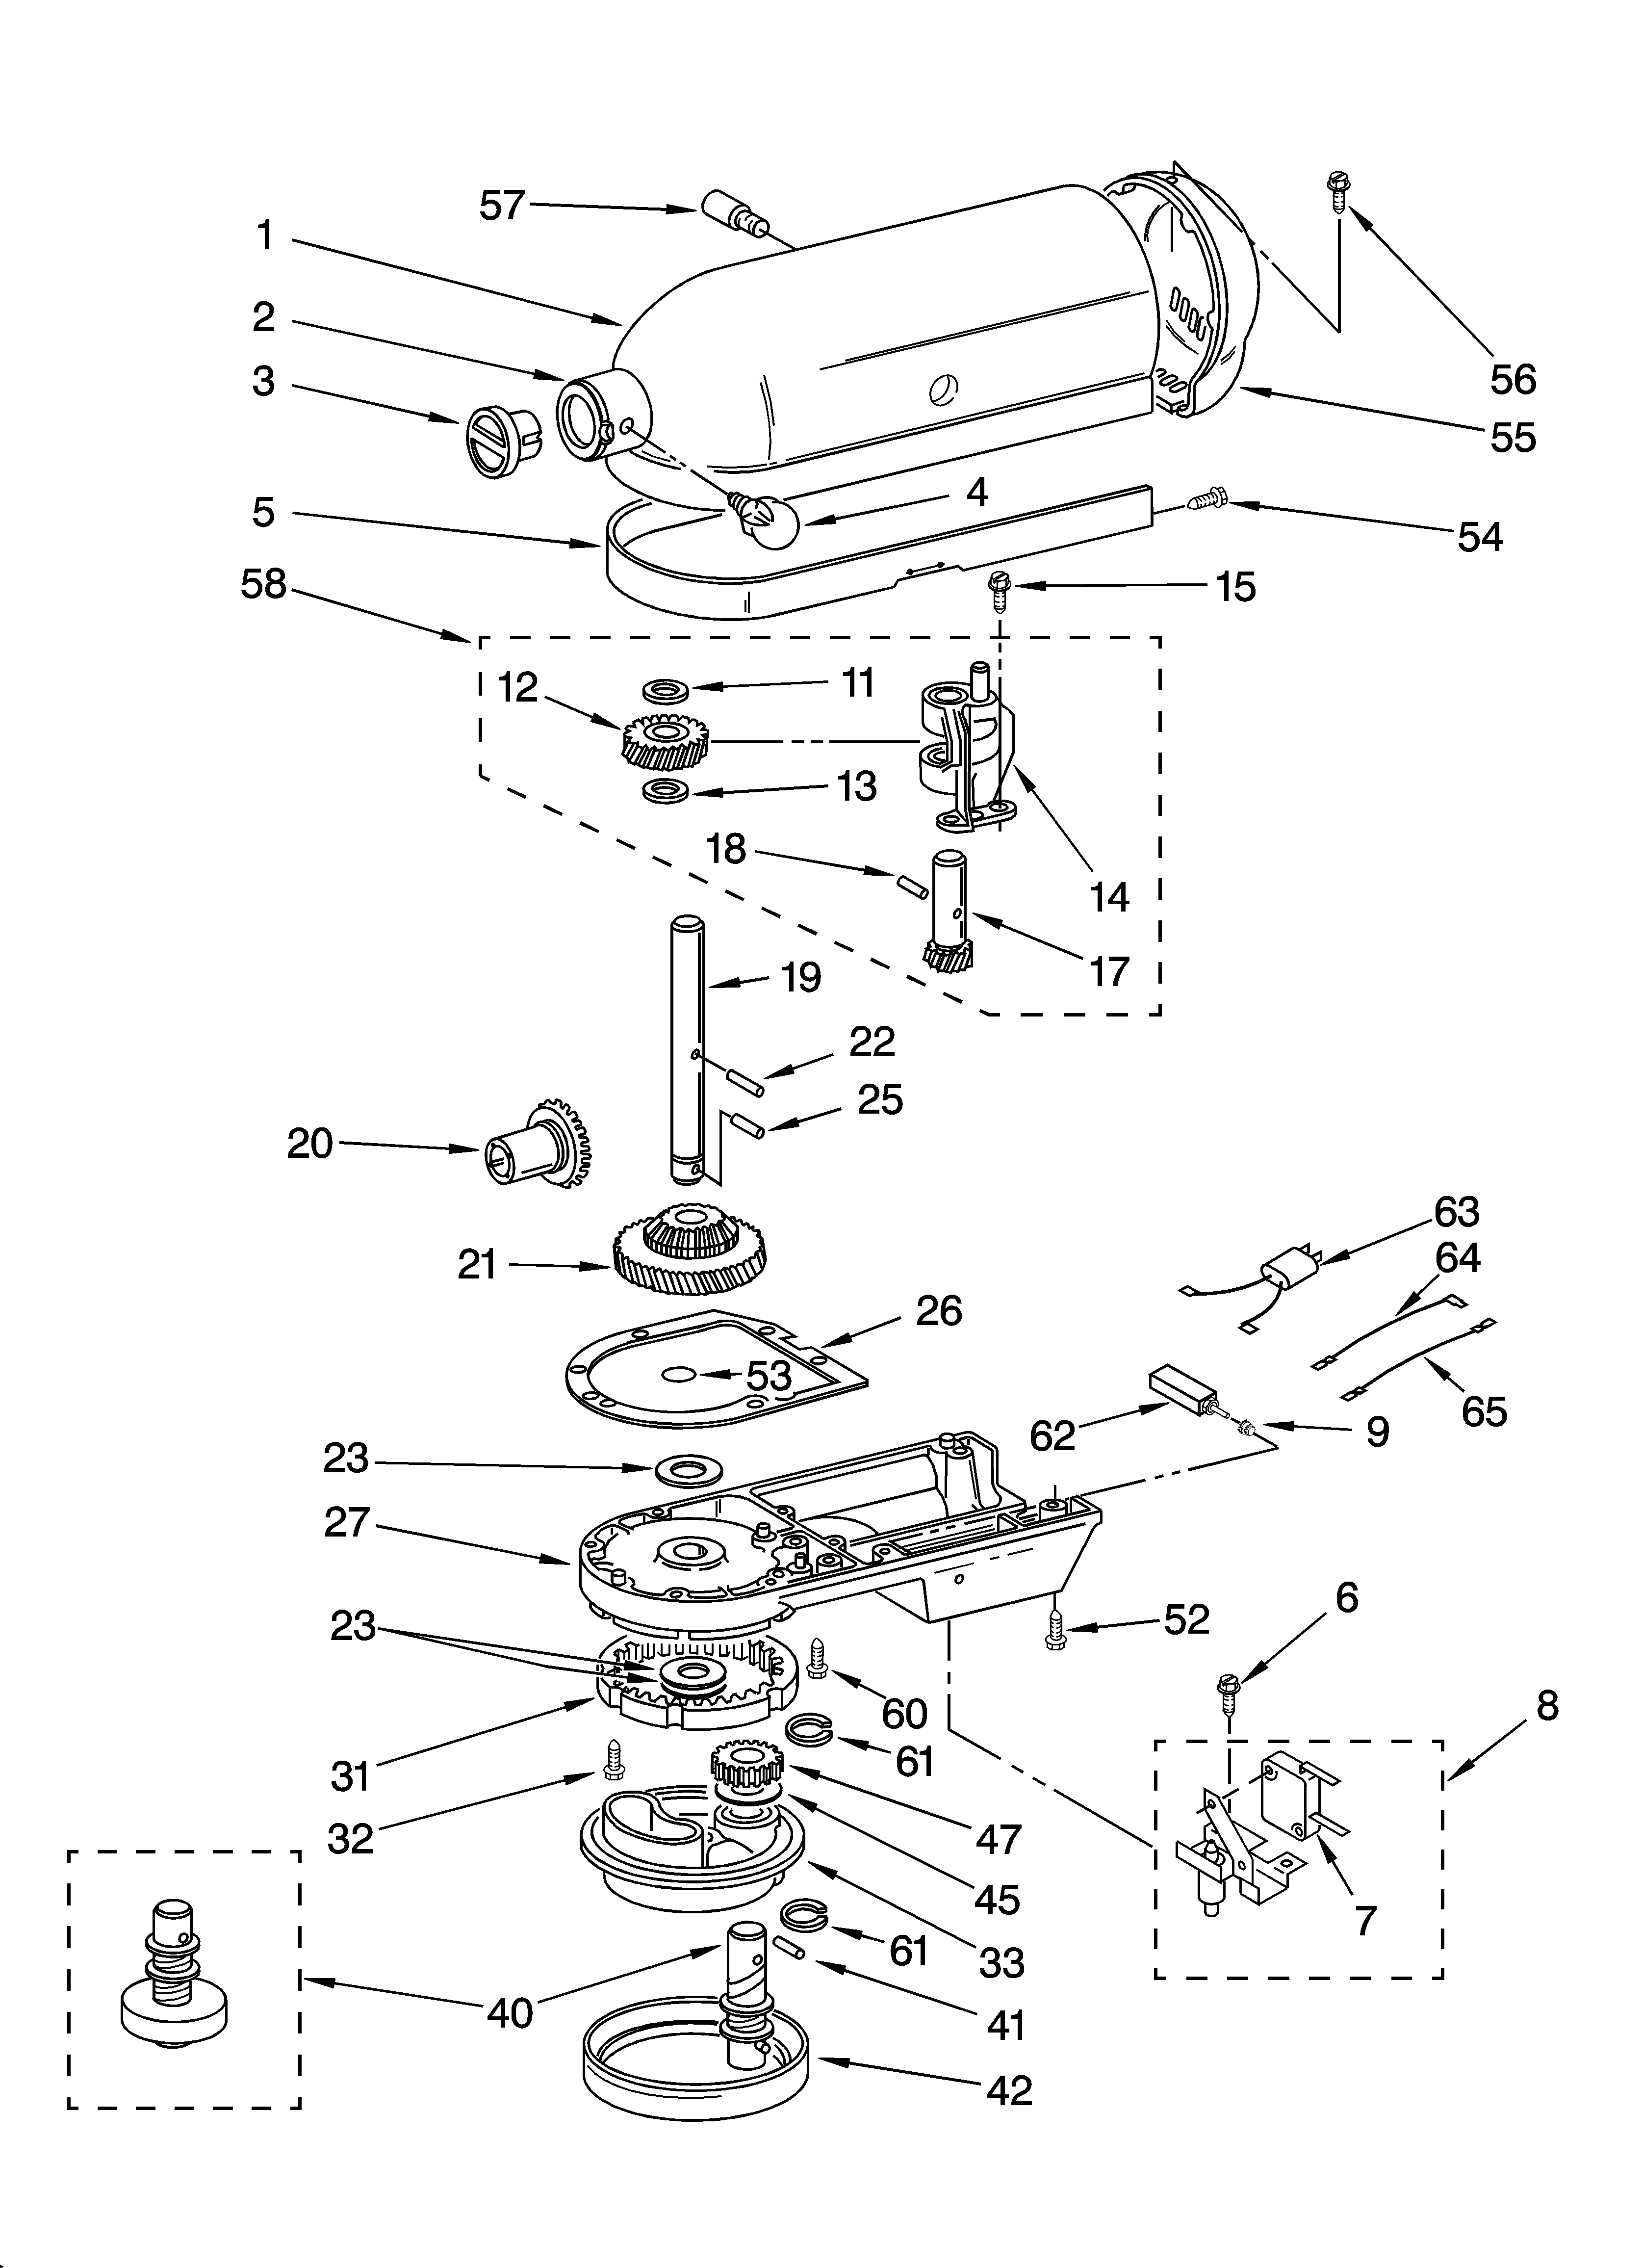 small resolution of kitchen mixer wiring diagram